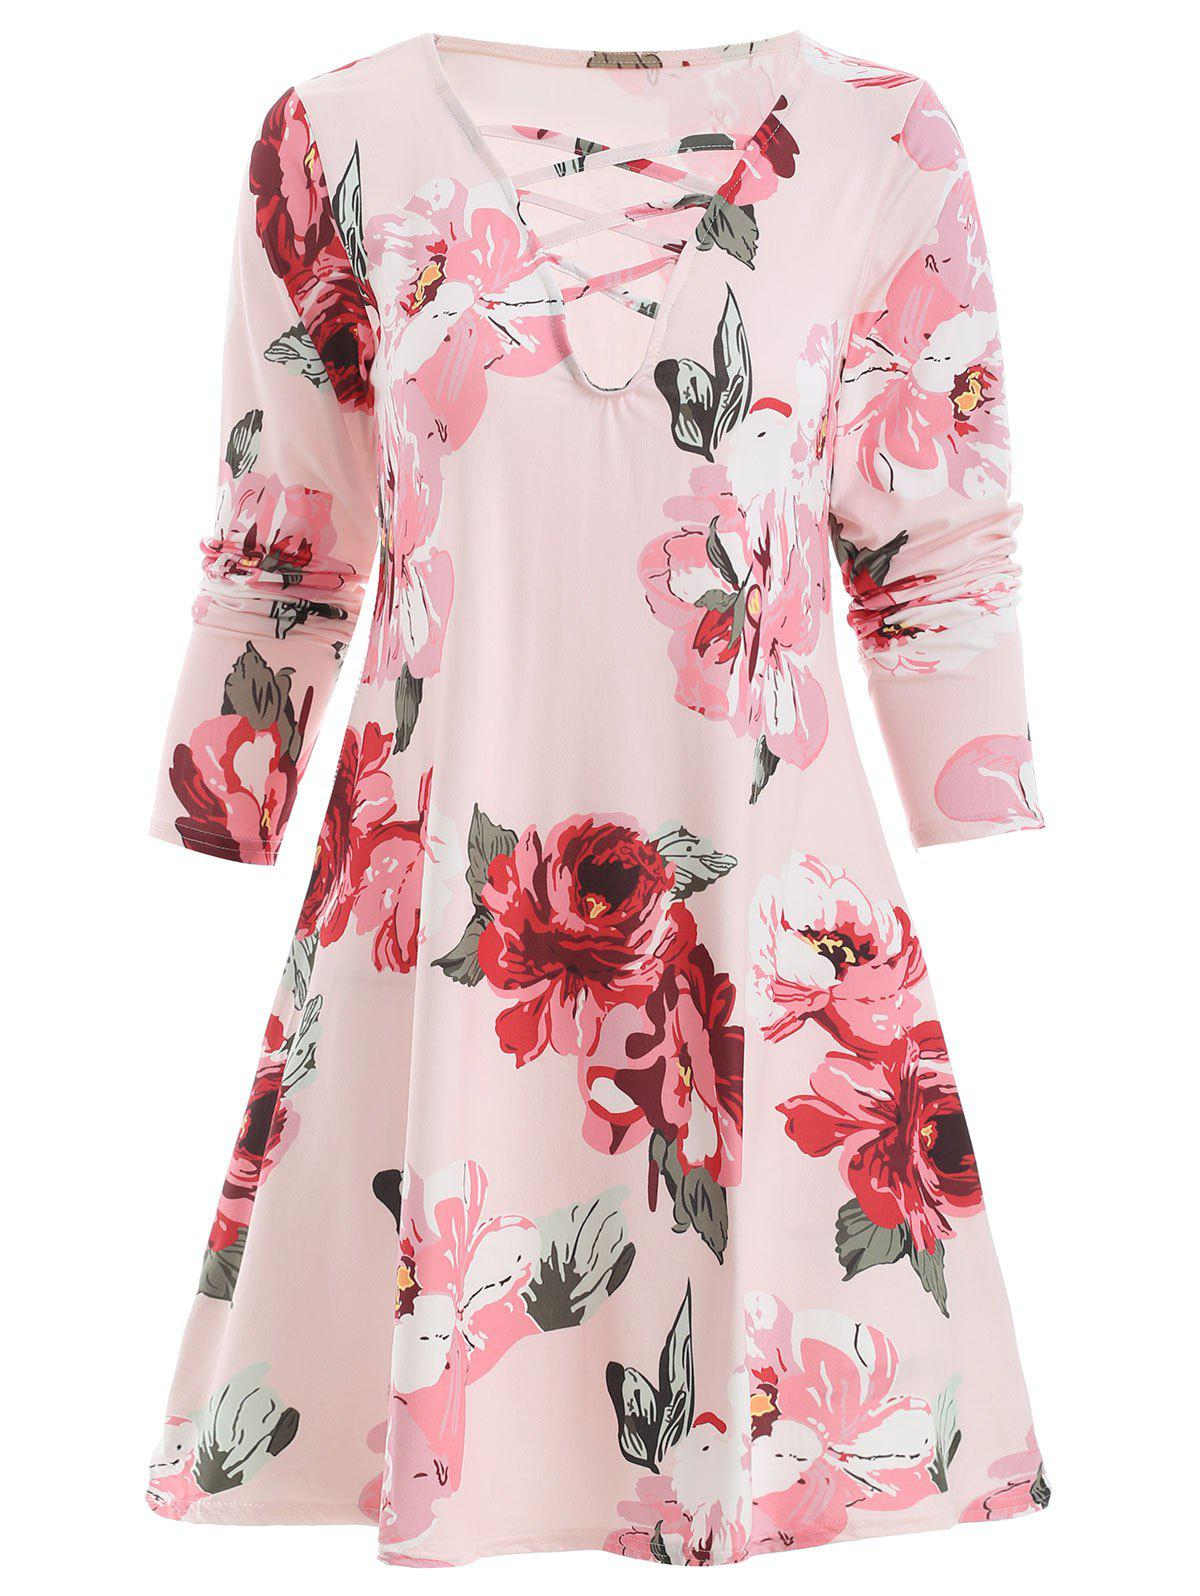 Affordable Floral Print Full Sleeve Lace Up Dress